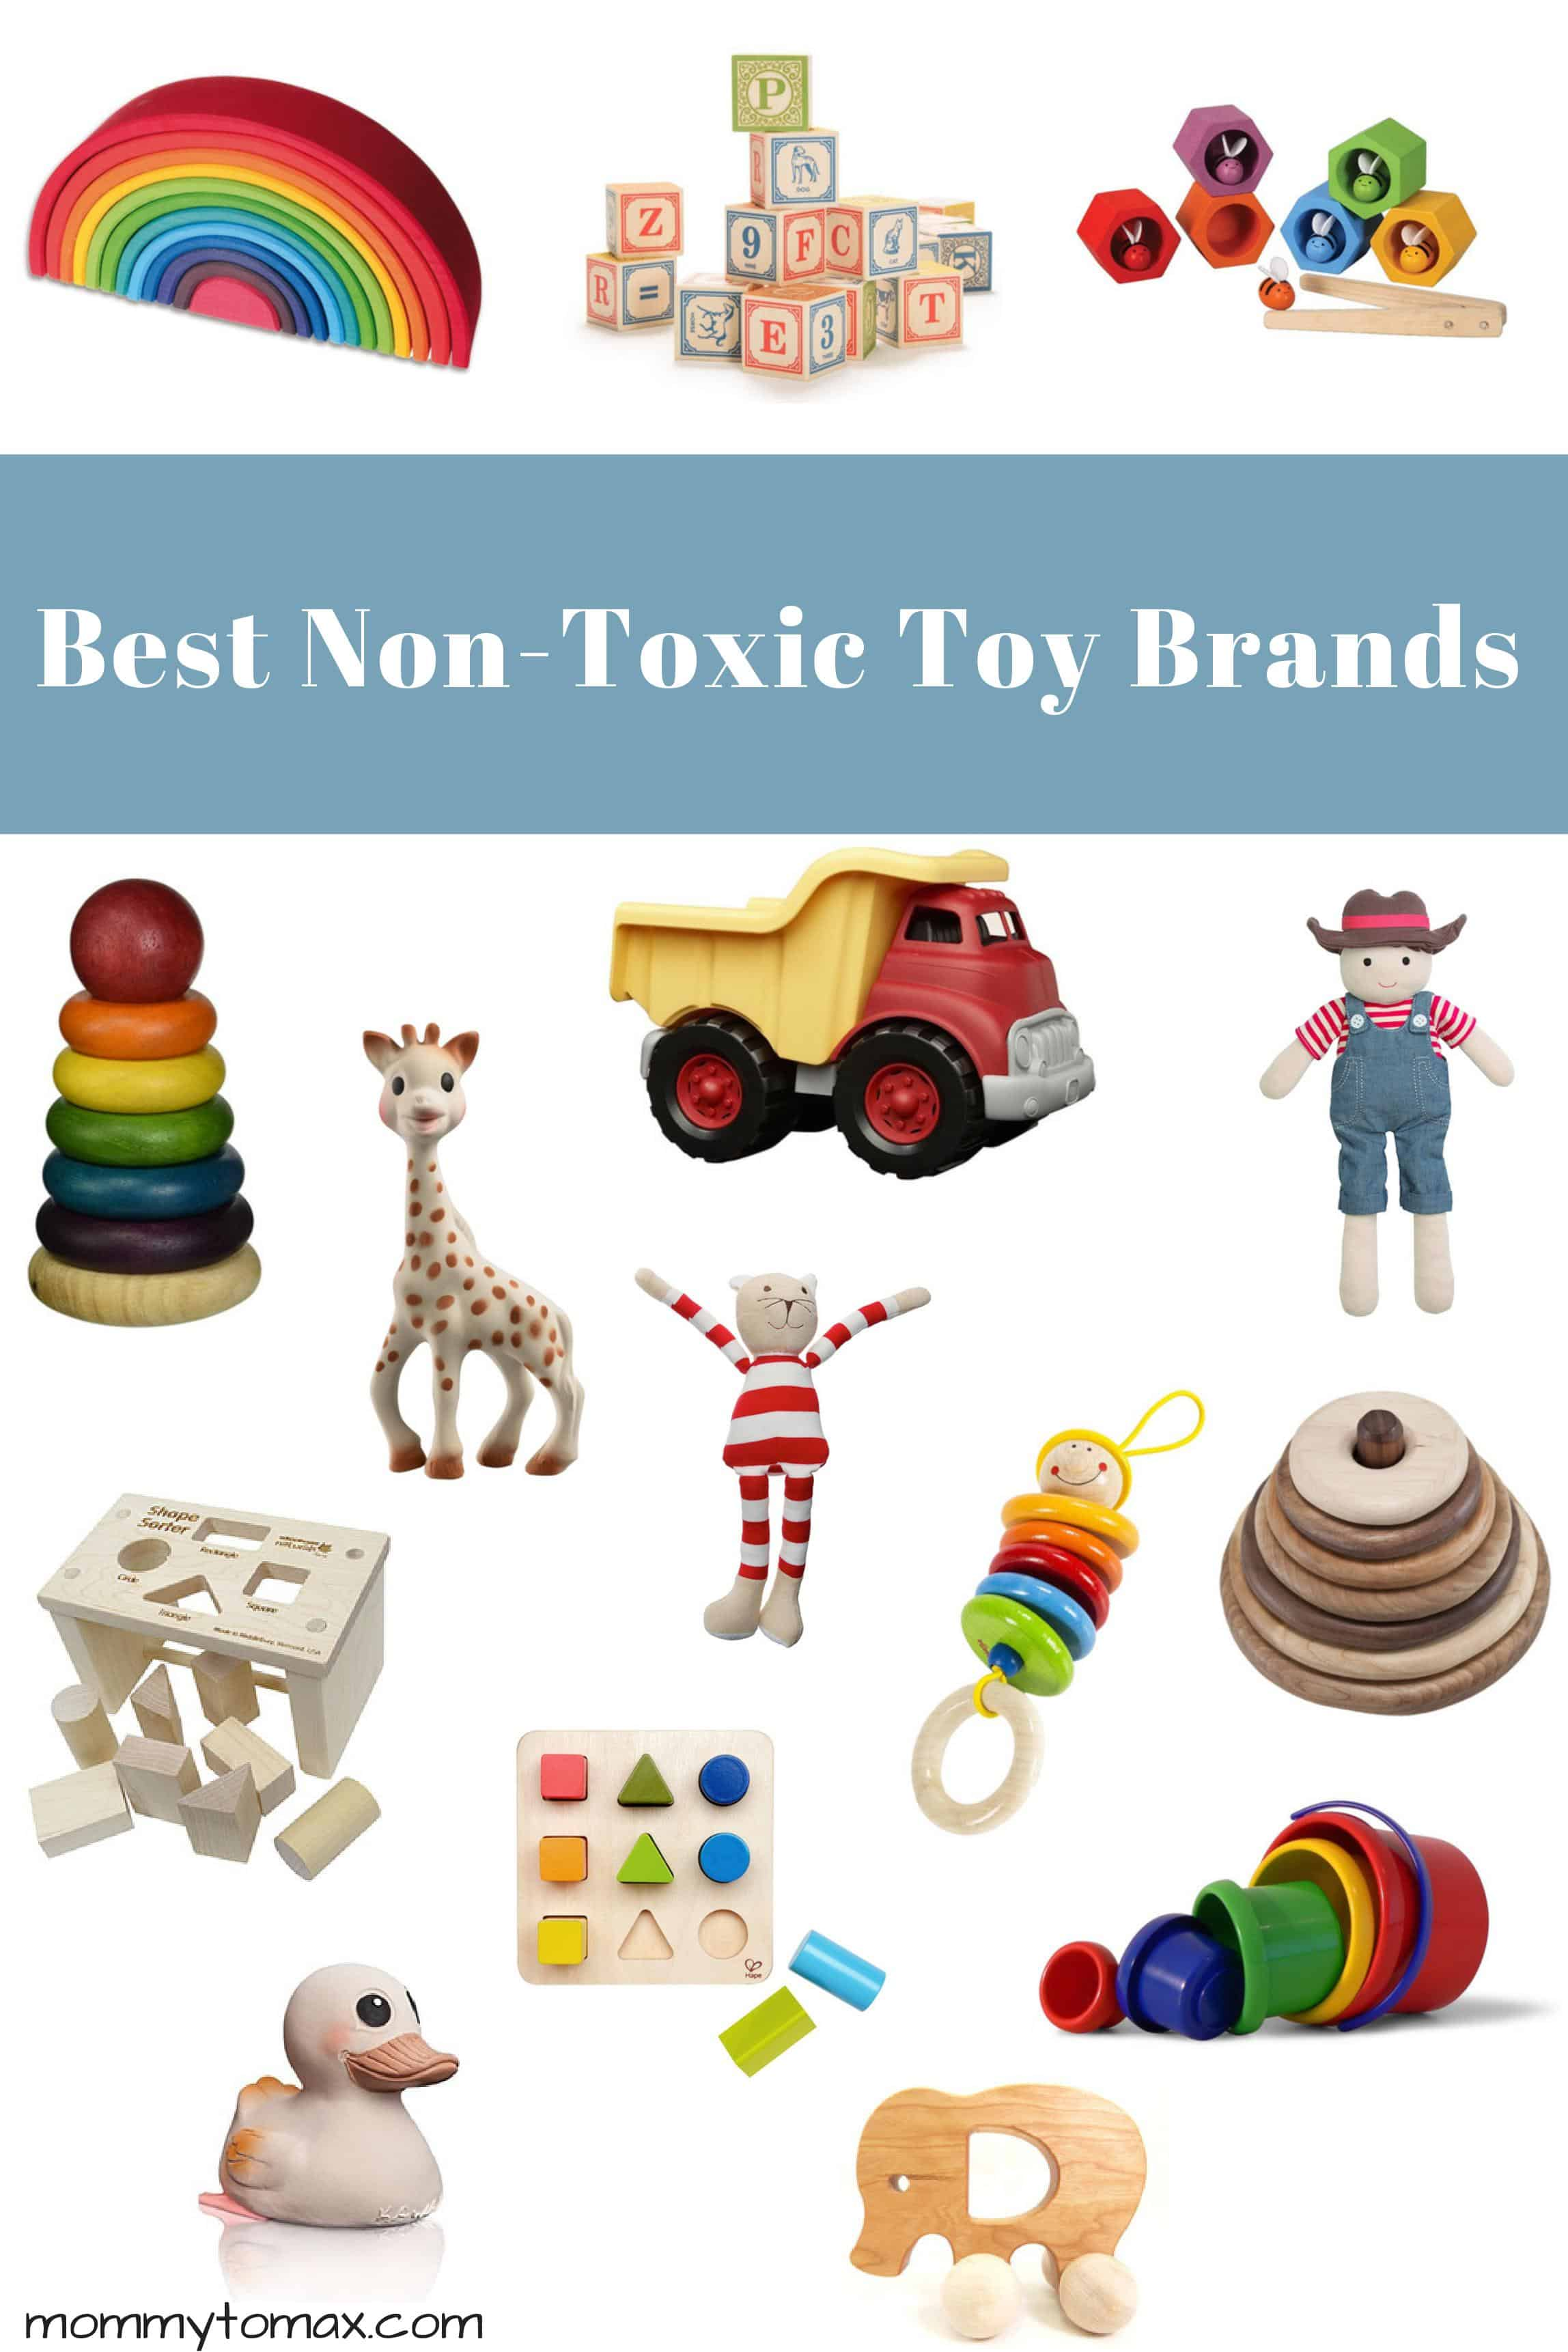 the ultimate guide to the best non-toxic toys | mommy to max